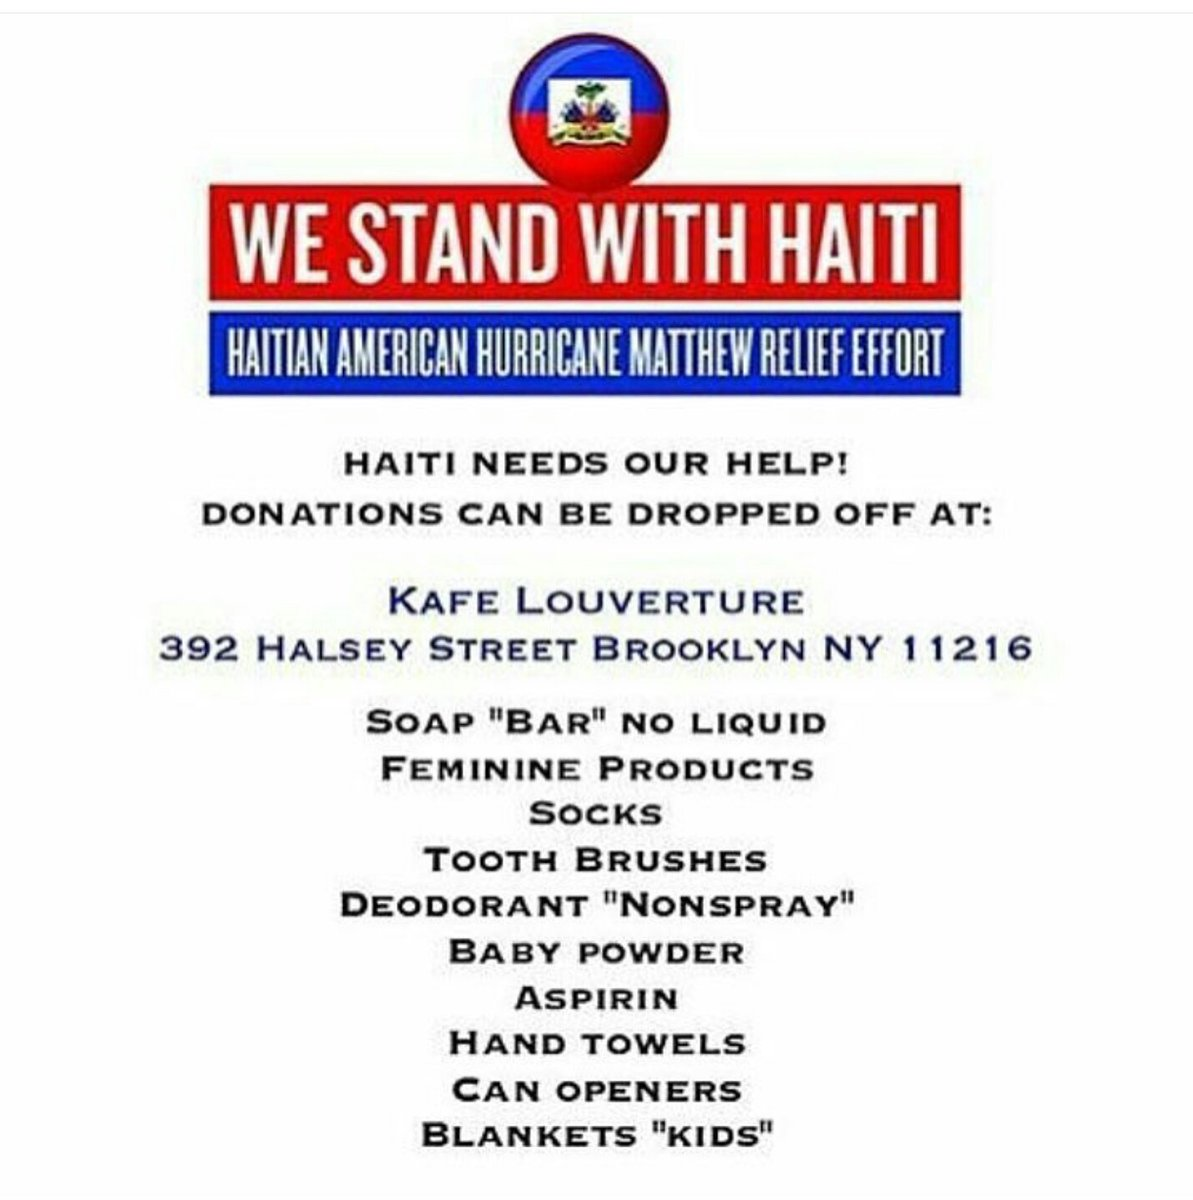 For those in NYC looking to help Haiti RT RT https://t.co/fDbFmFn3ua